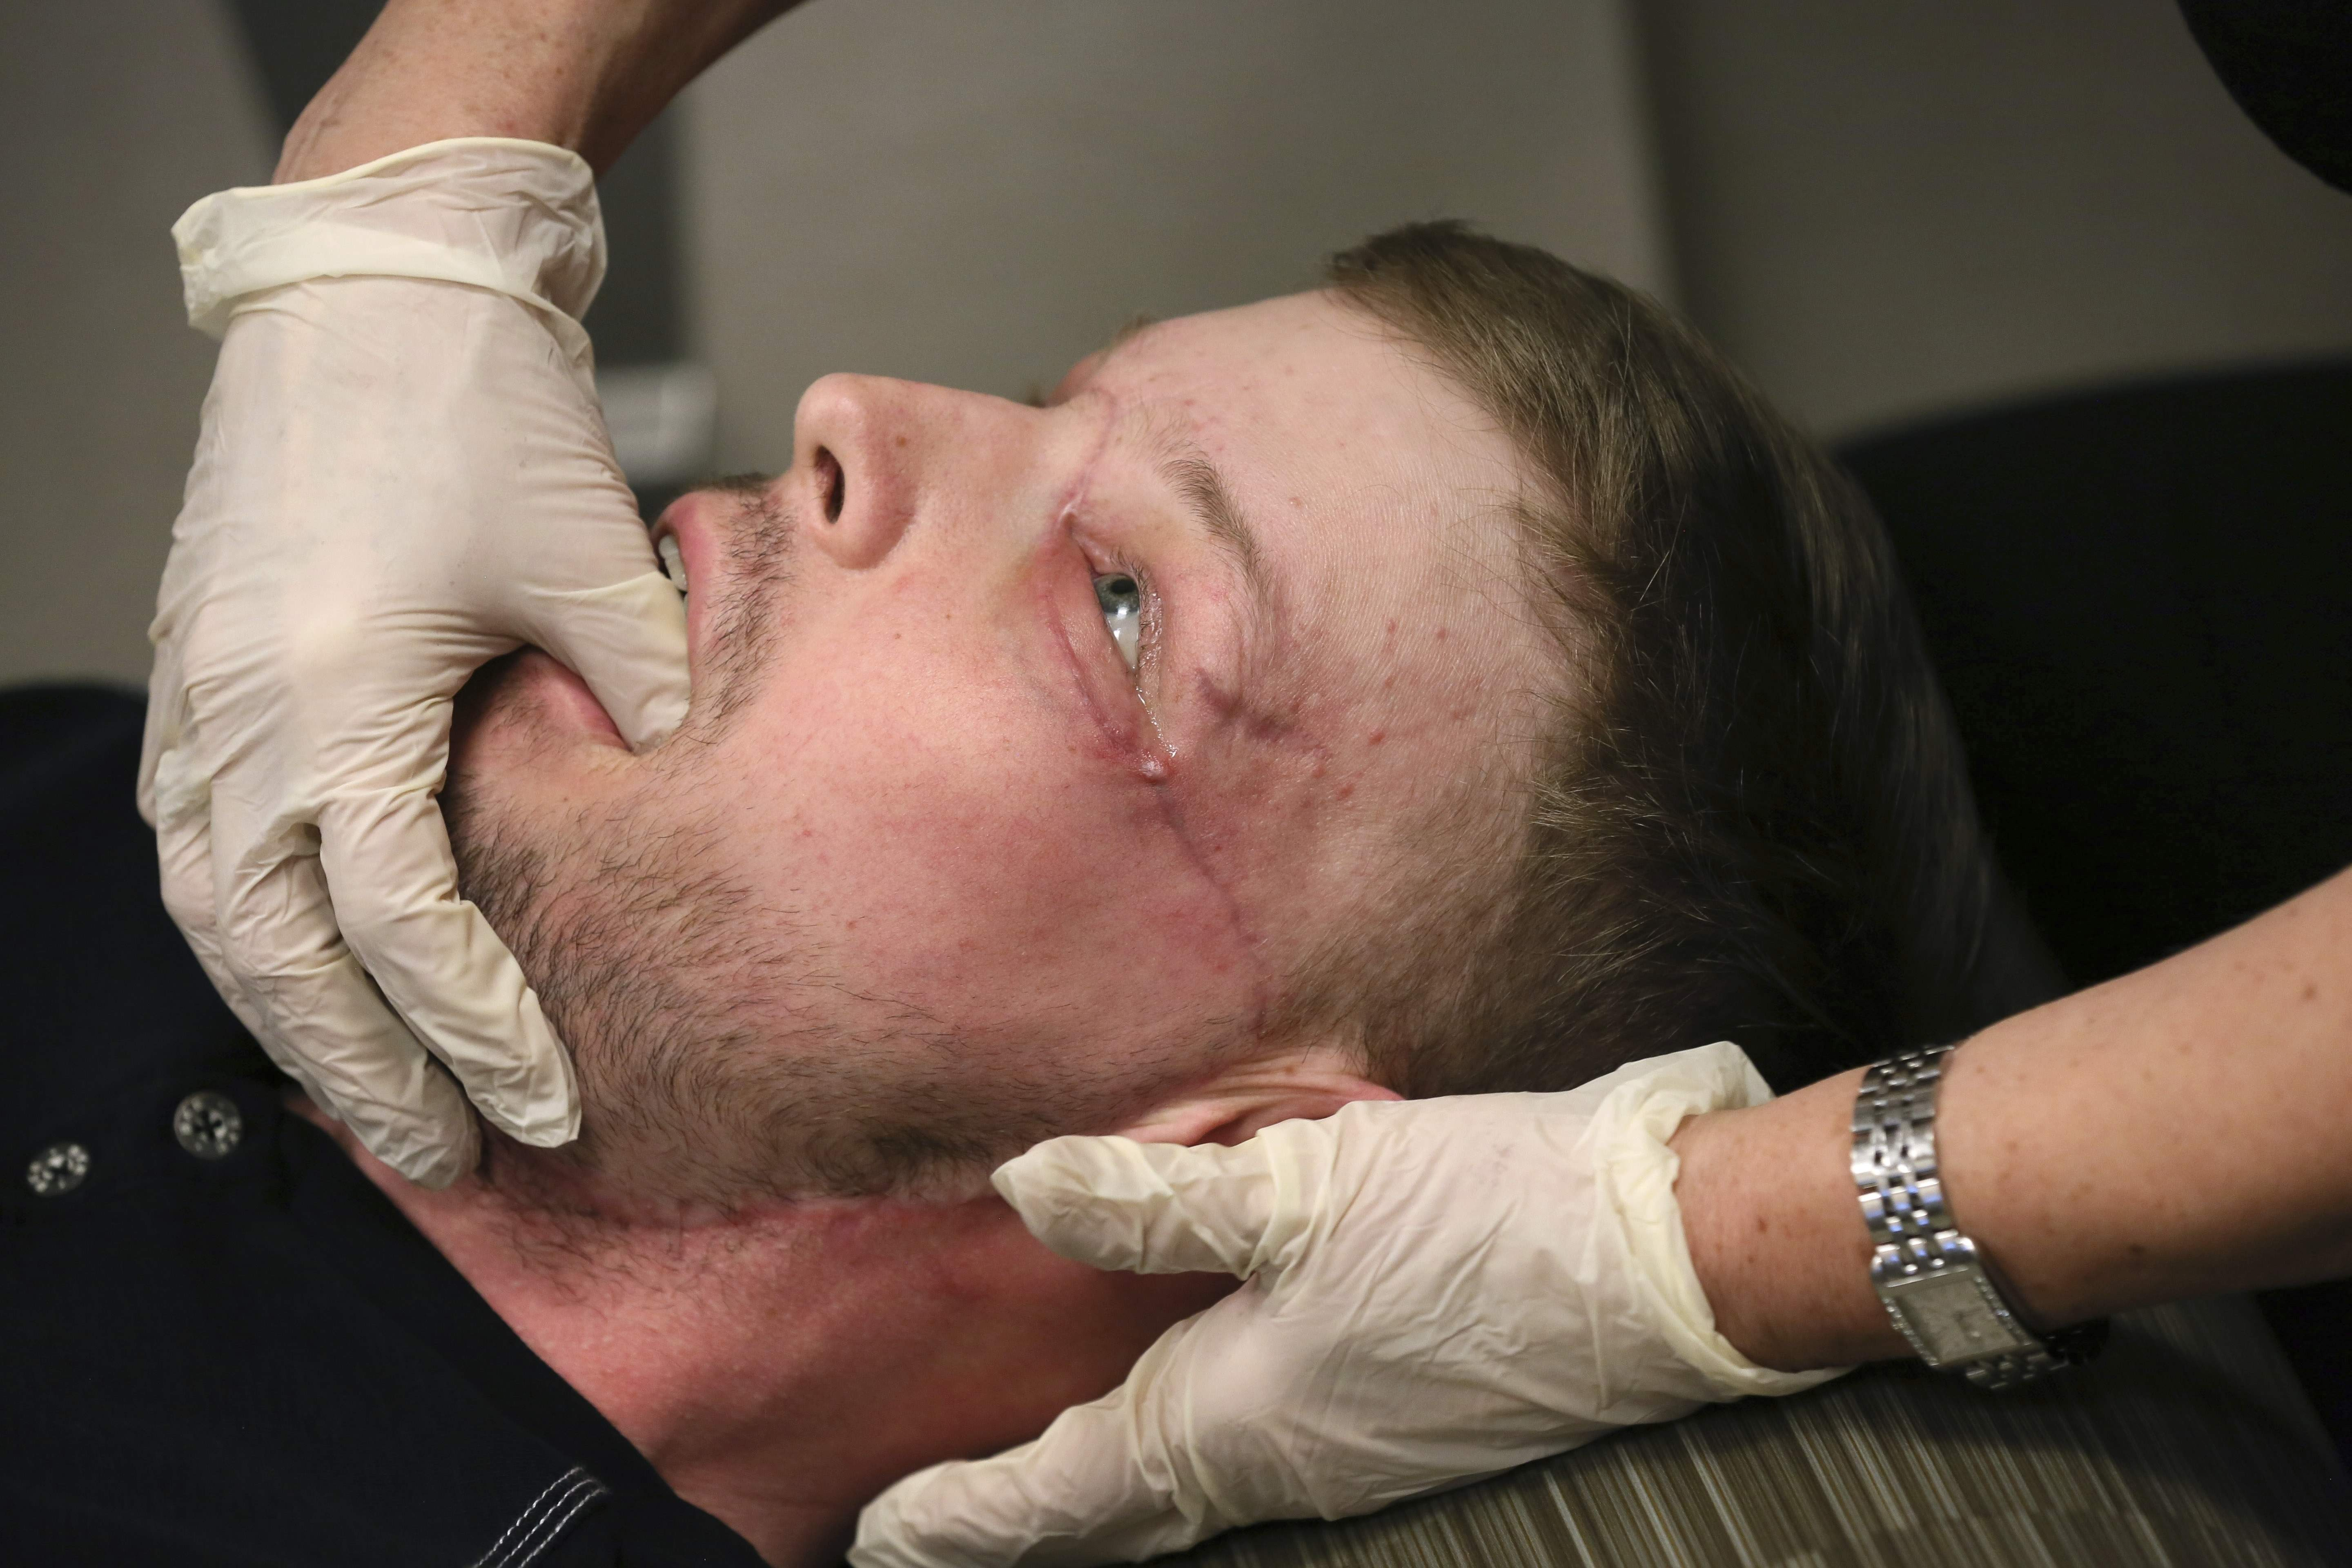 In this Jan. 24, 2017 photo, face transplant recipient Andy Sandness has his face checked during an appointment with physical therapist Helga Smars at Mayo Clinic in Rochester, Minn. THE ASSOCIATED PRESS